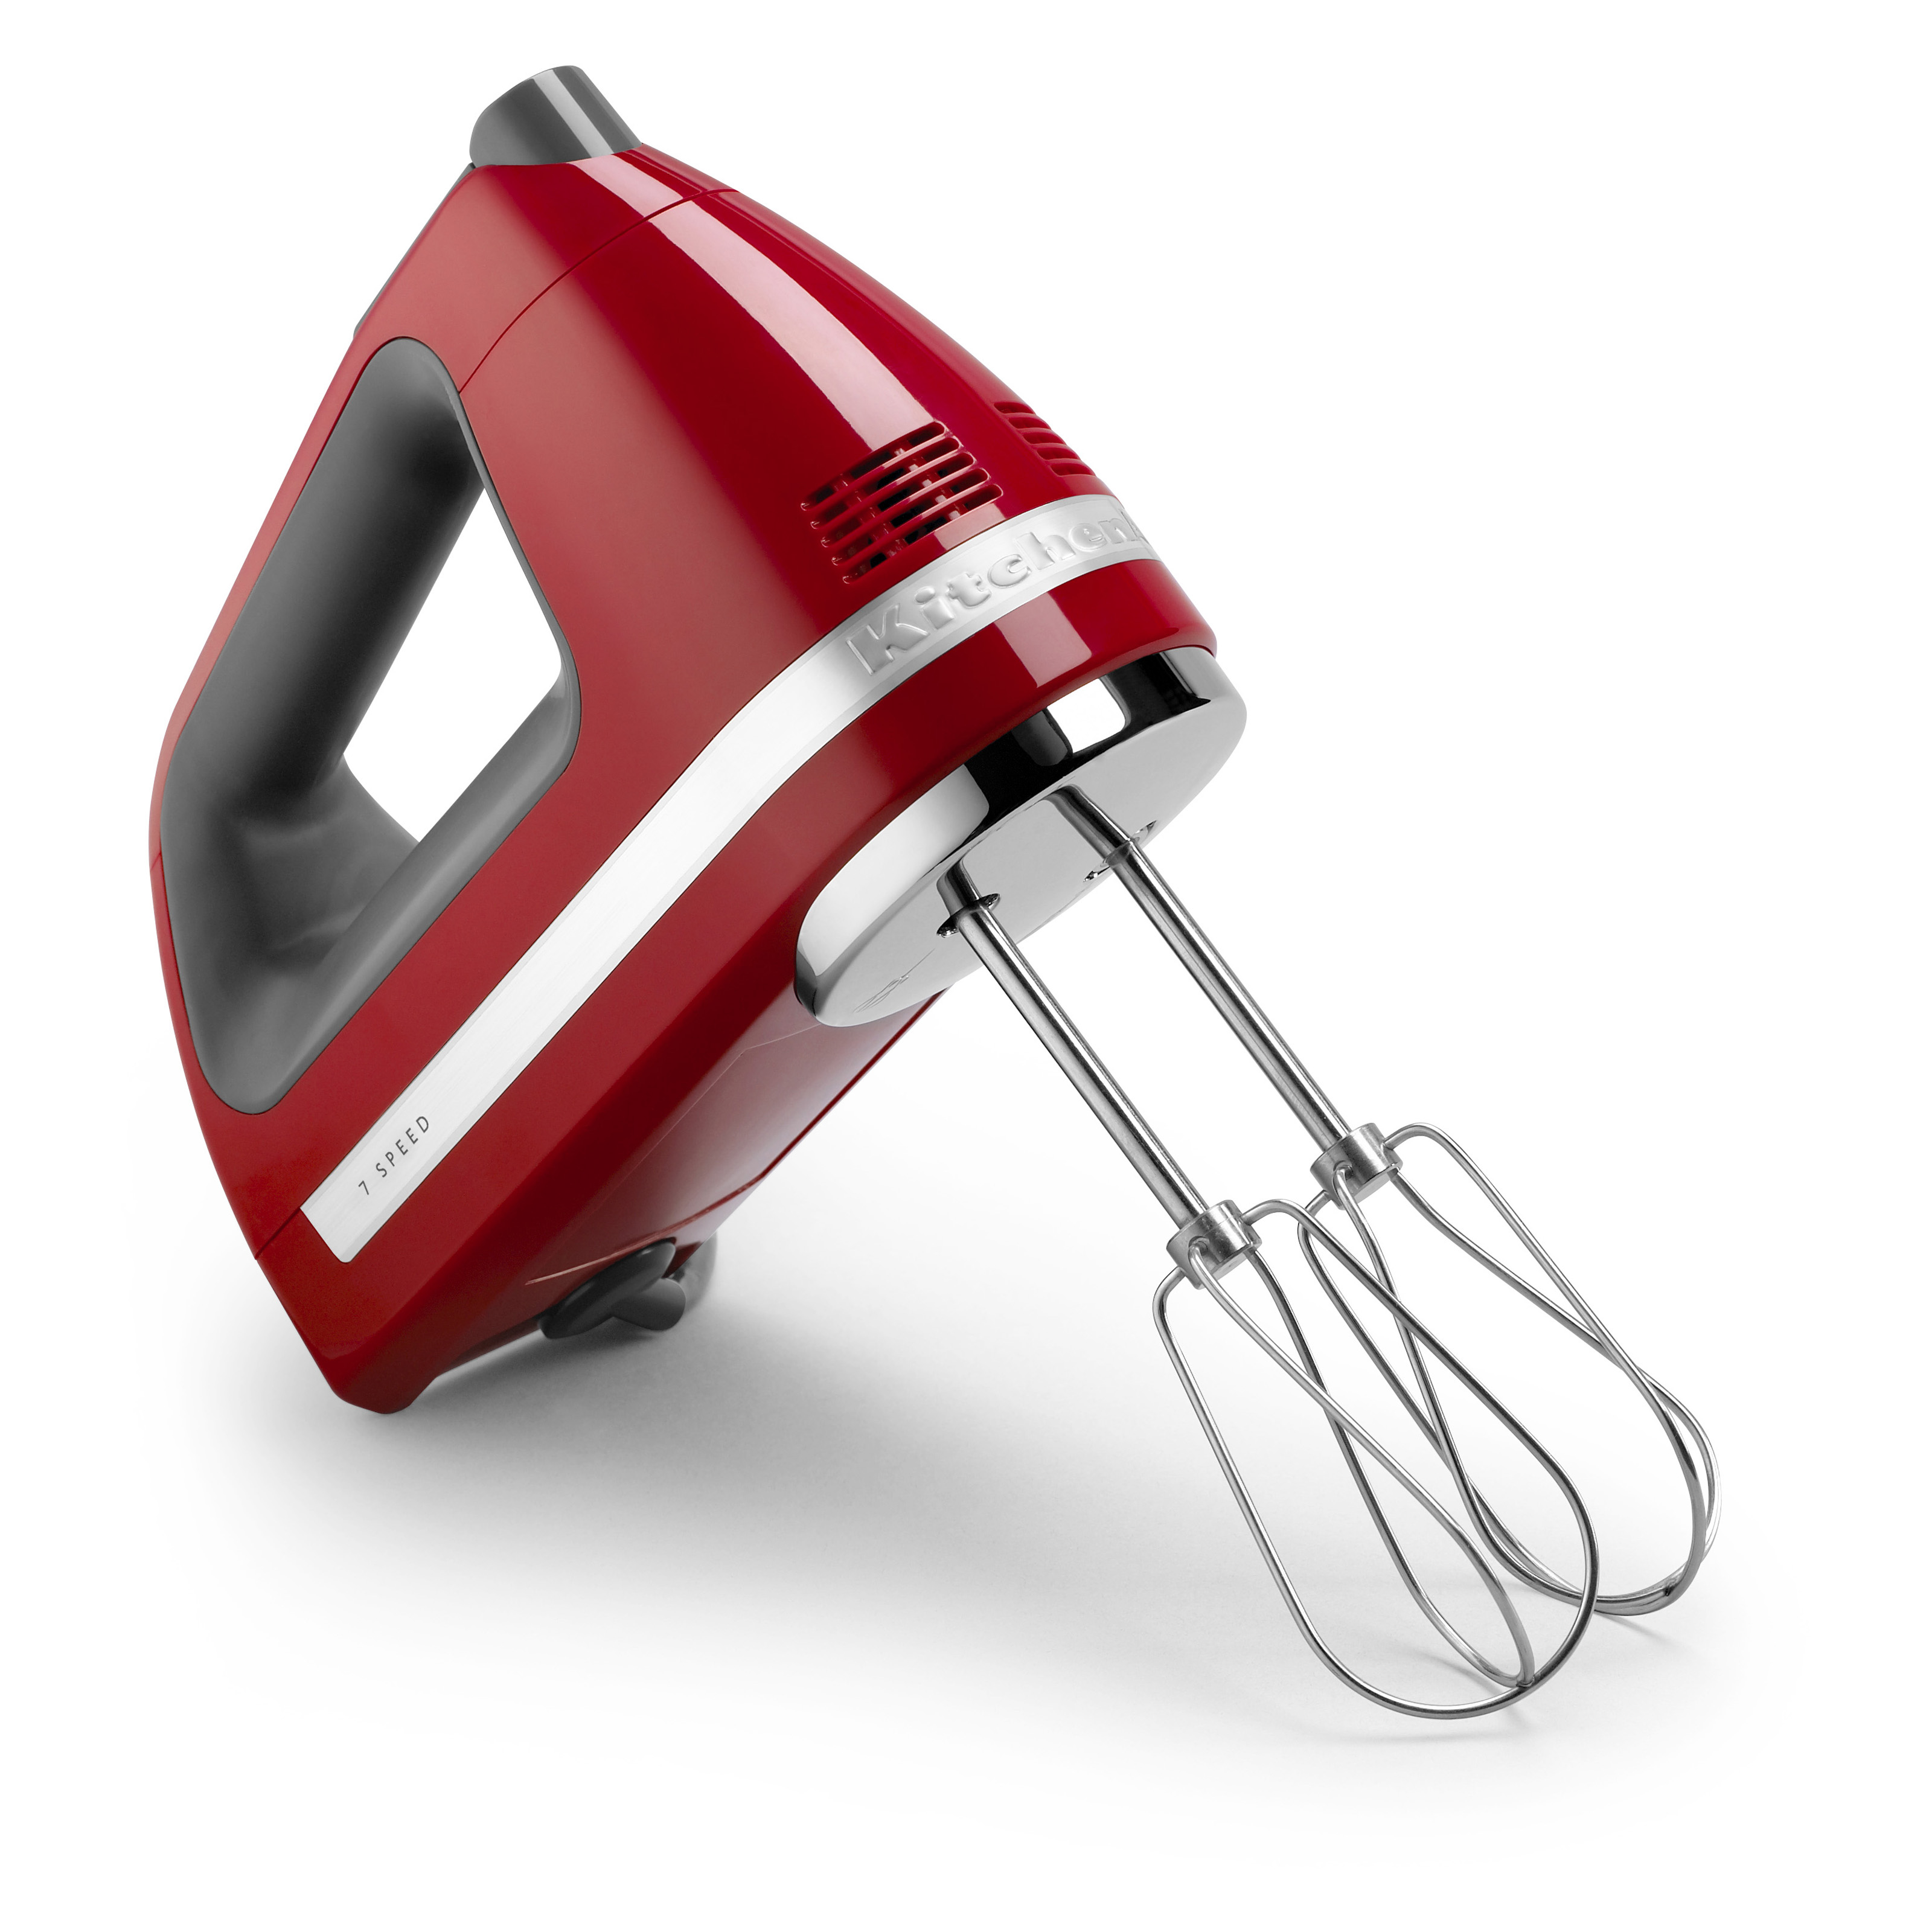 Kitchenaid Khm7210er 7 Speed Digital Hand Mixer Empire Red Mixers At Hayneedle